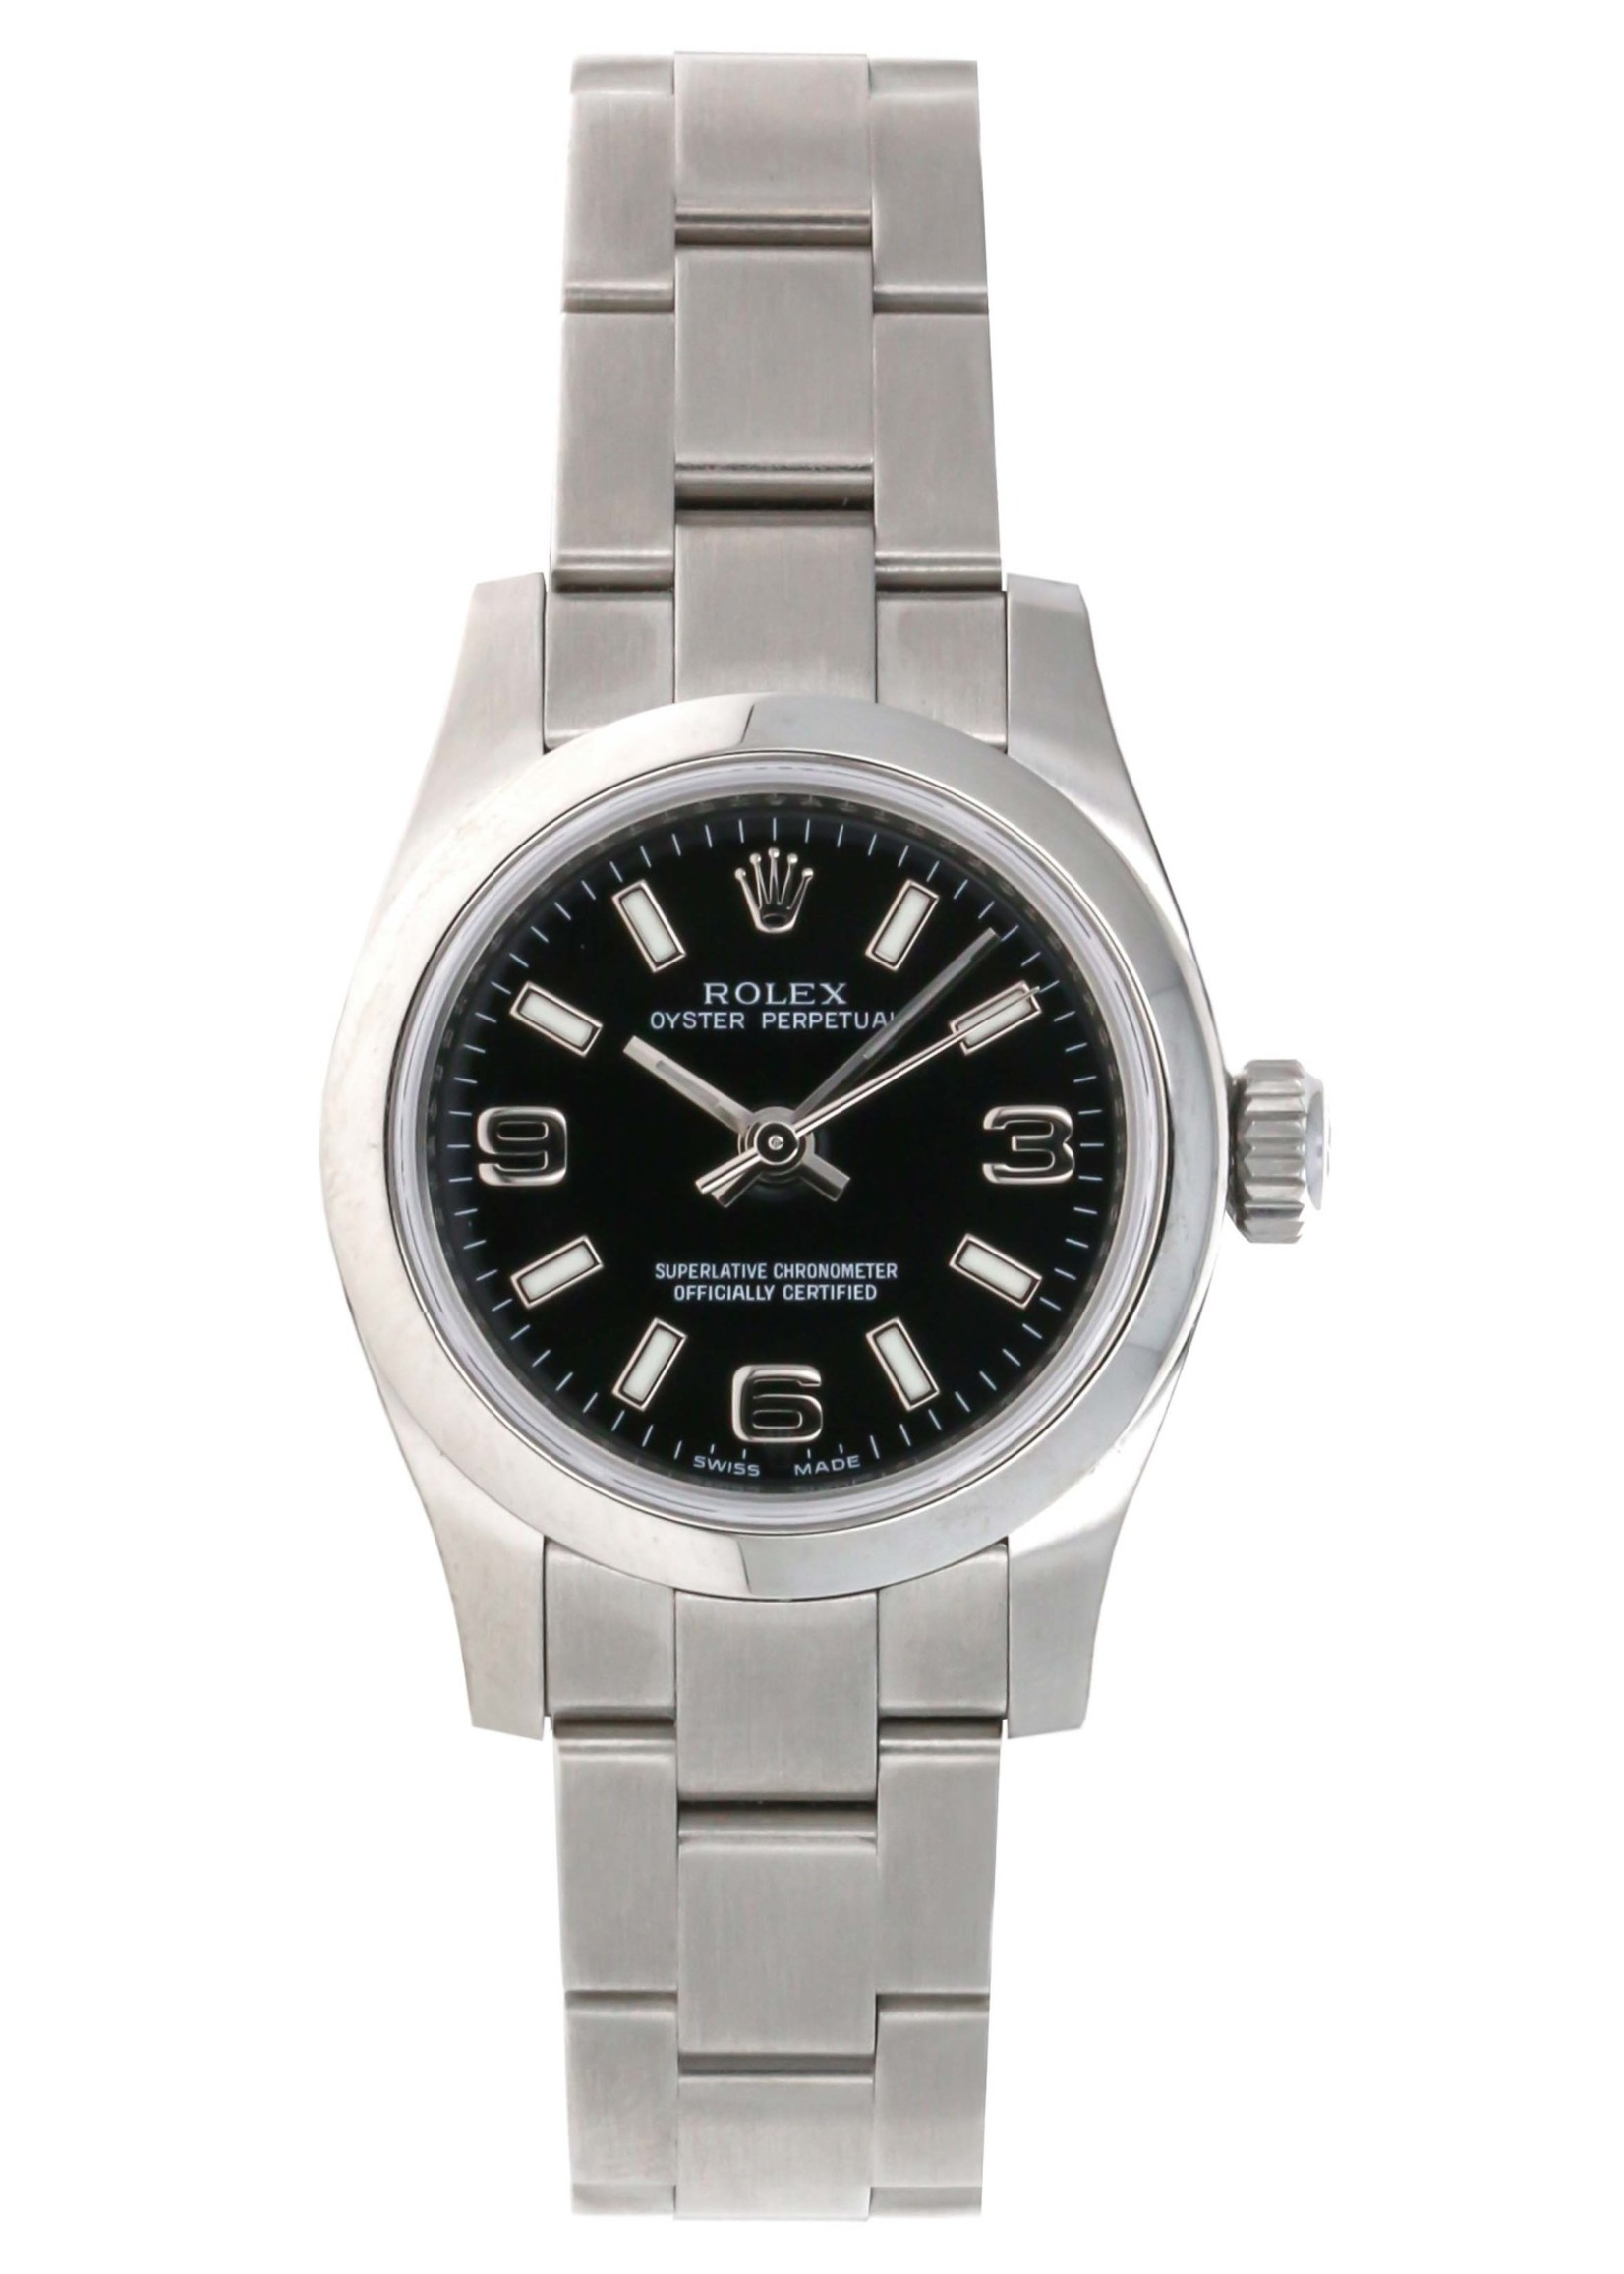 Rolex Watches ROLEX OYSTER PERPETUAL 26MM (B+P) - NEW OLD STOCK #176200